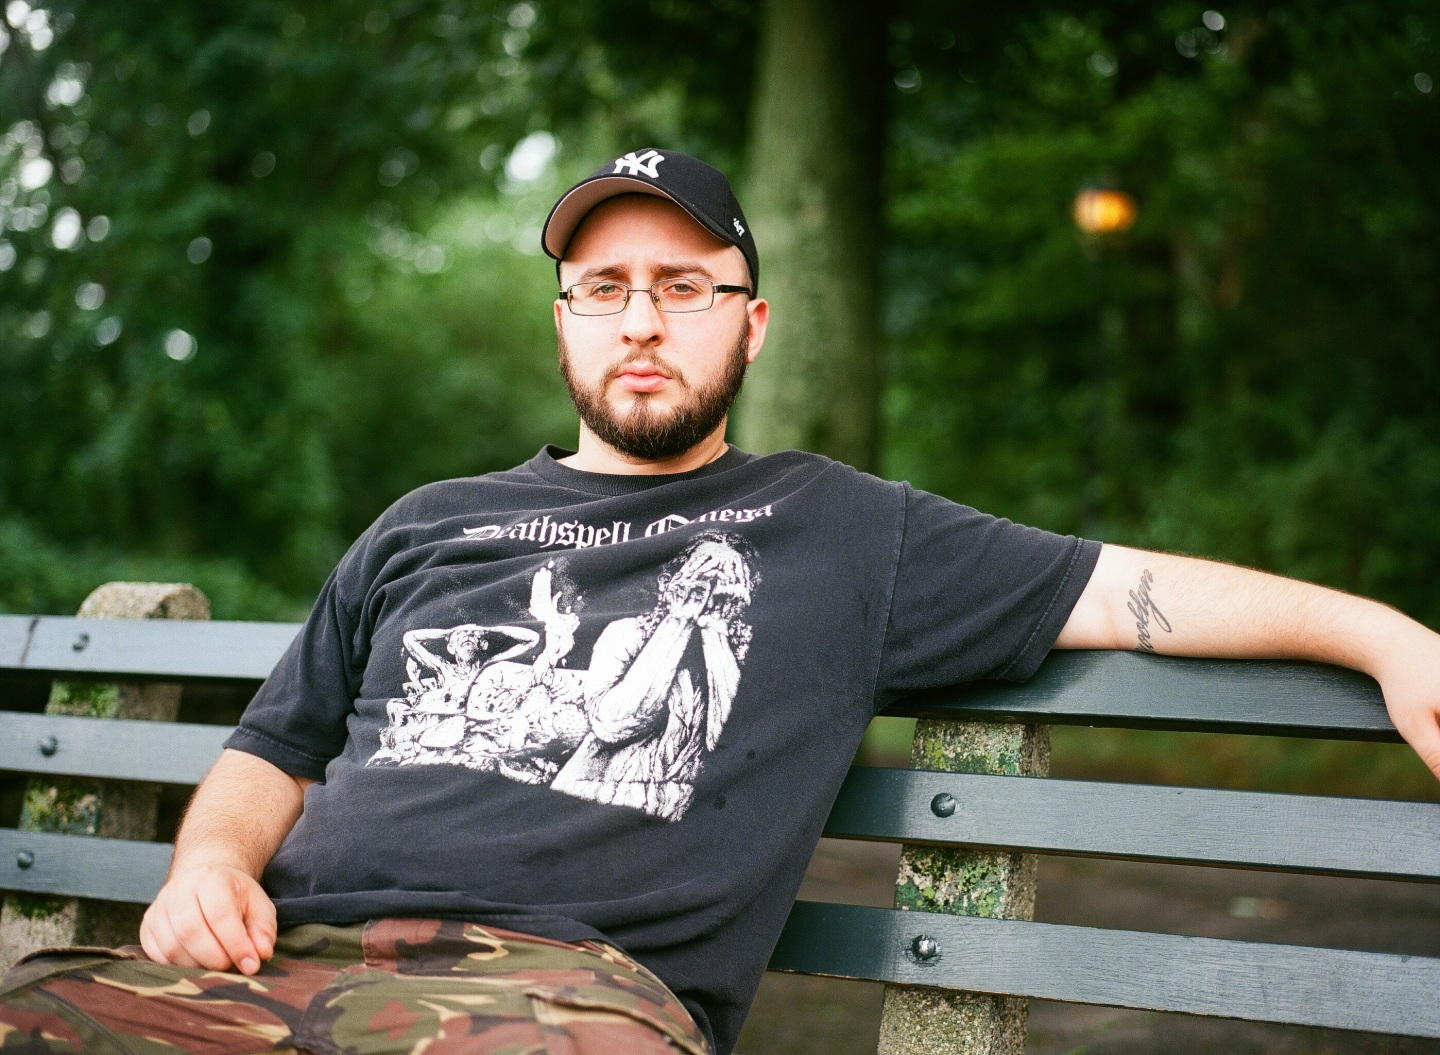 Tony Seltzer is the producer fueling New York's rap underground